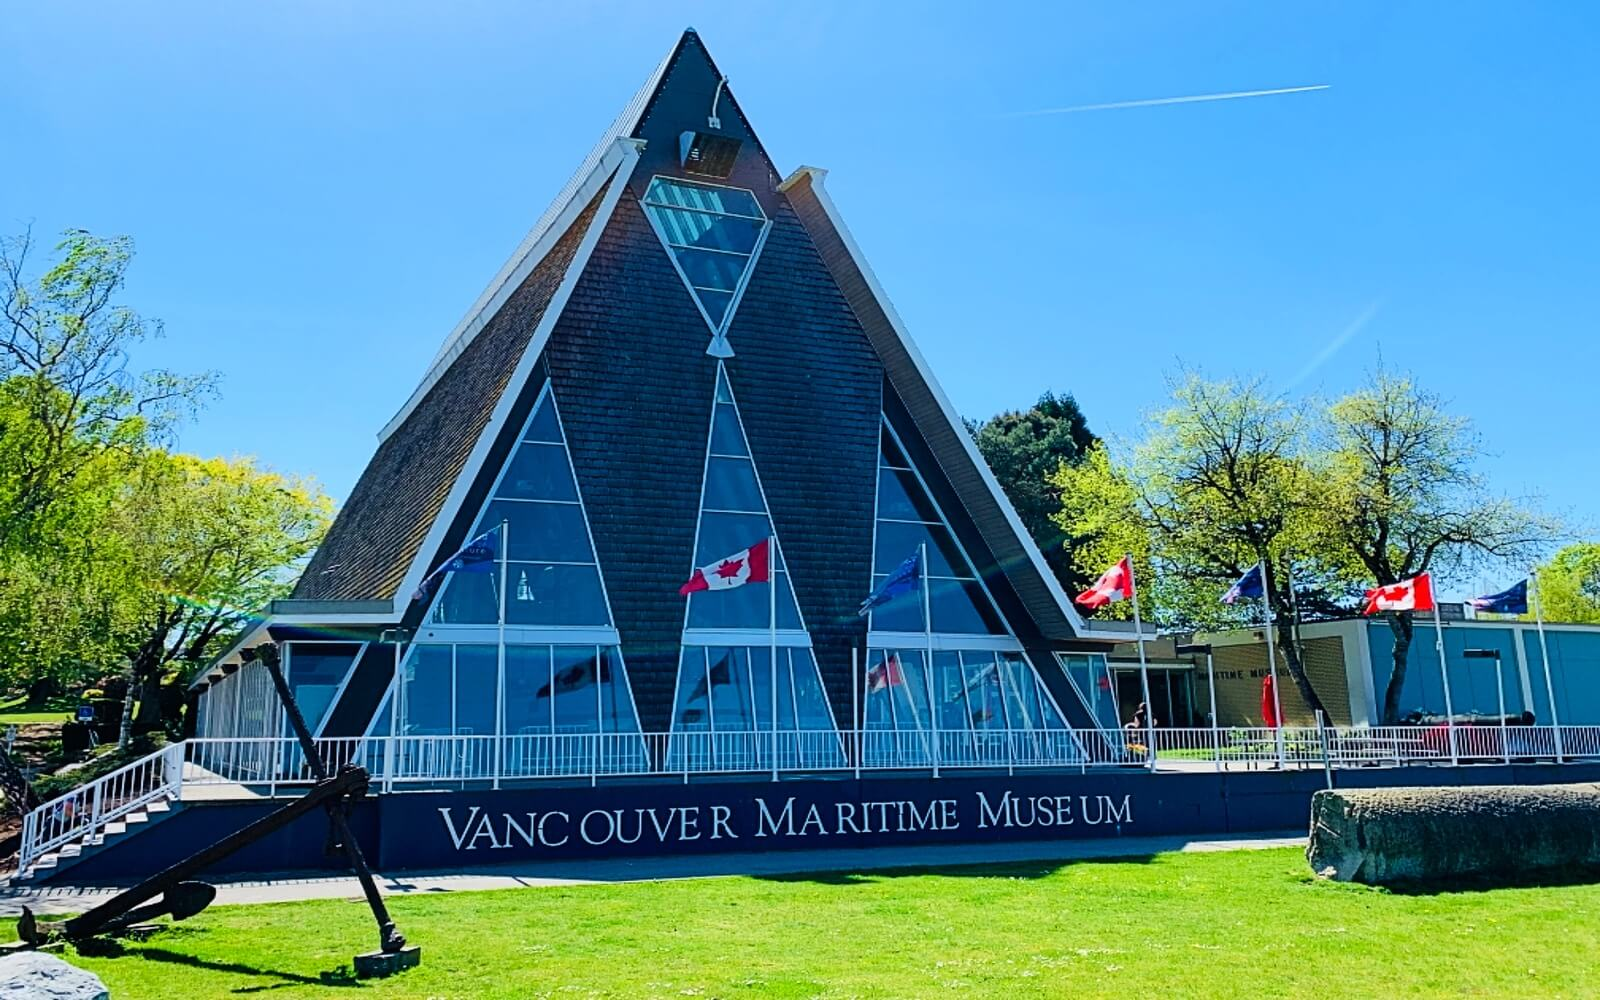 The entrance to the Vancouver Maritime Museum